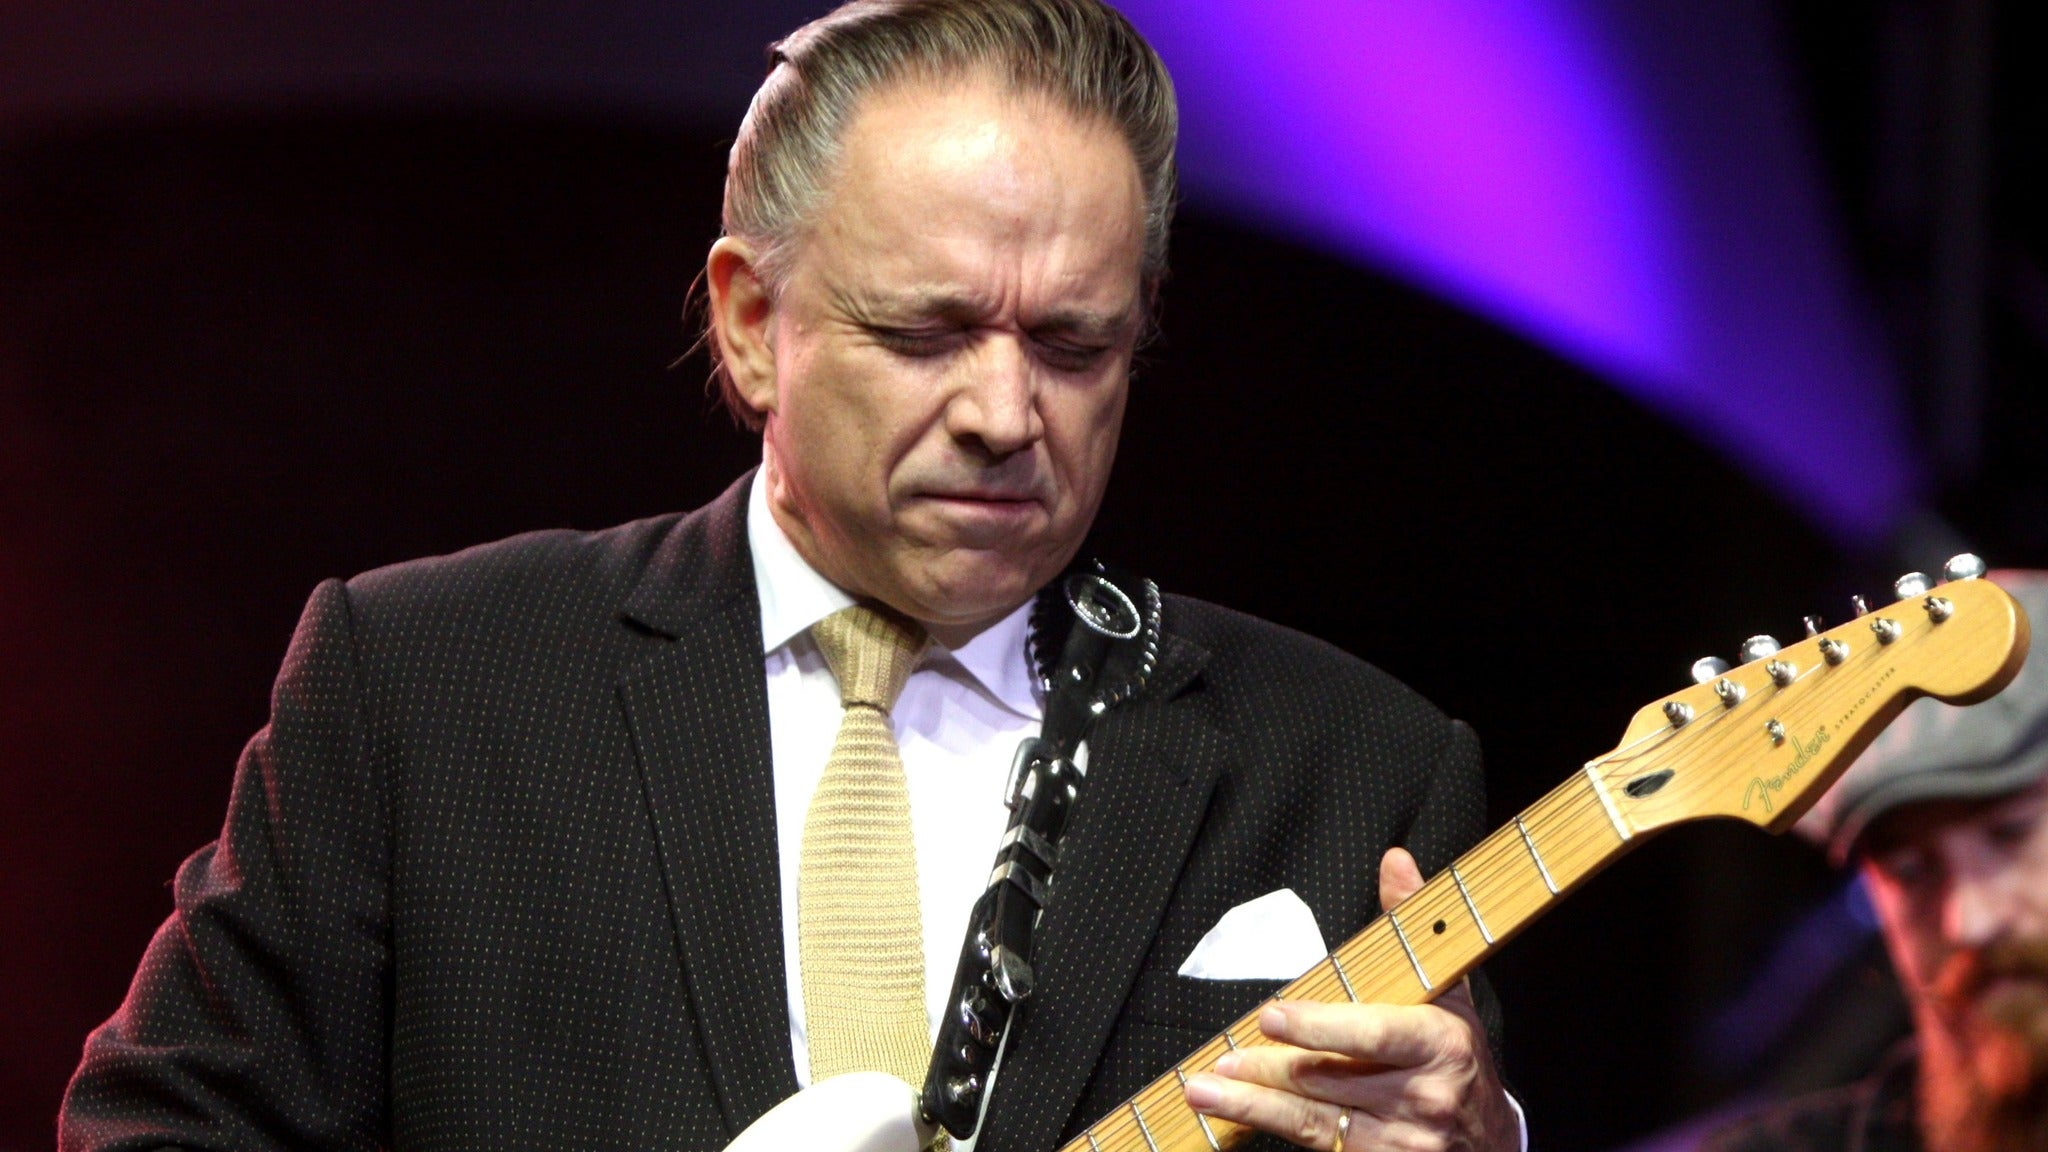 Jimmie Vaughan at The Token Lounge